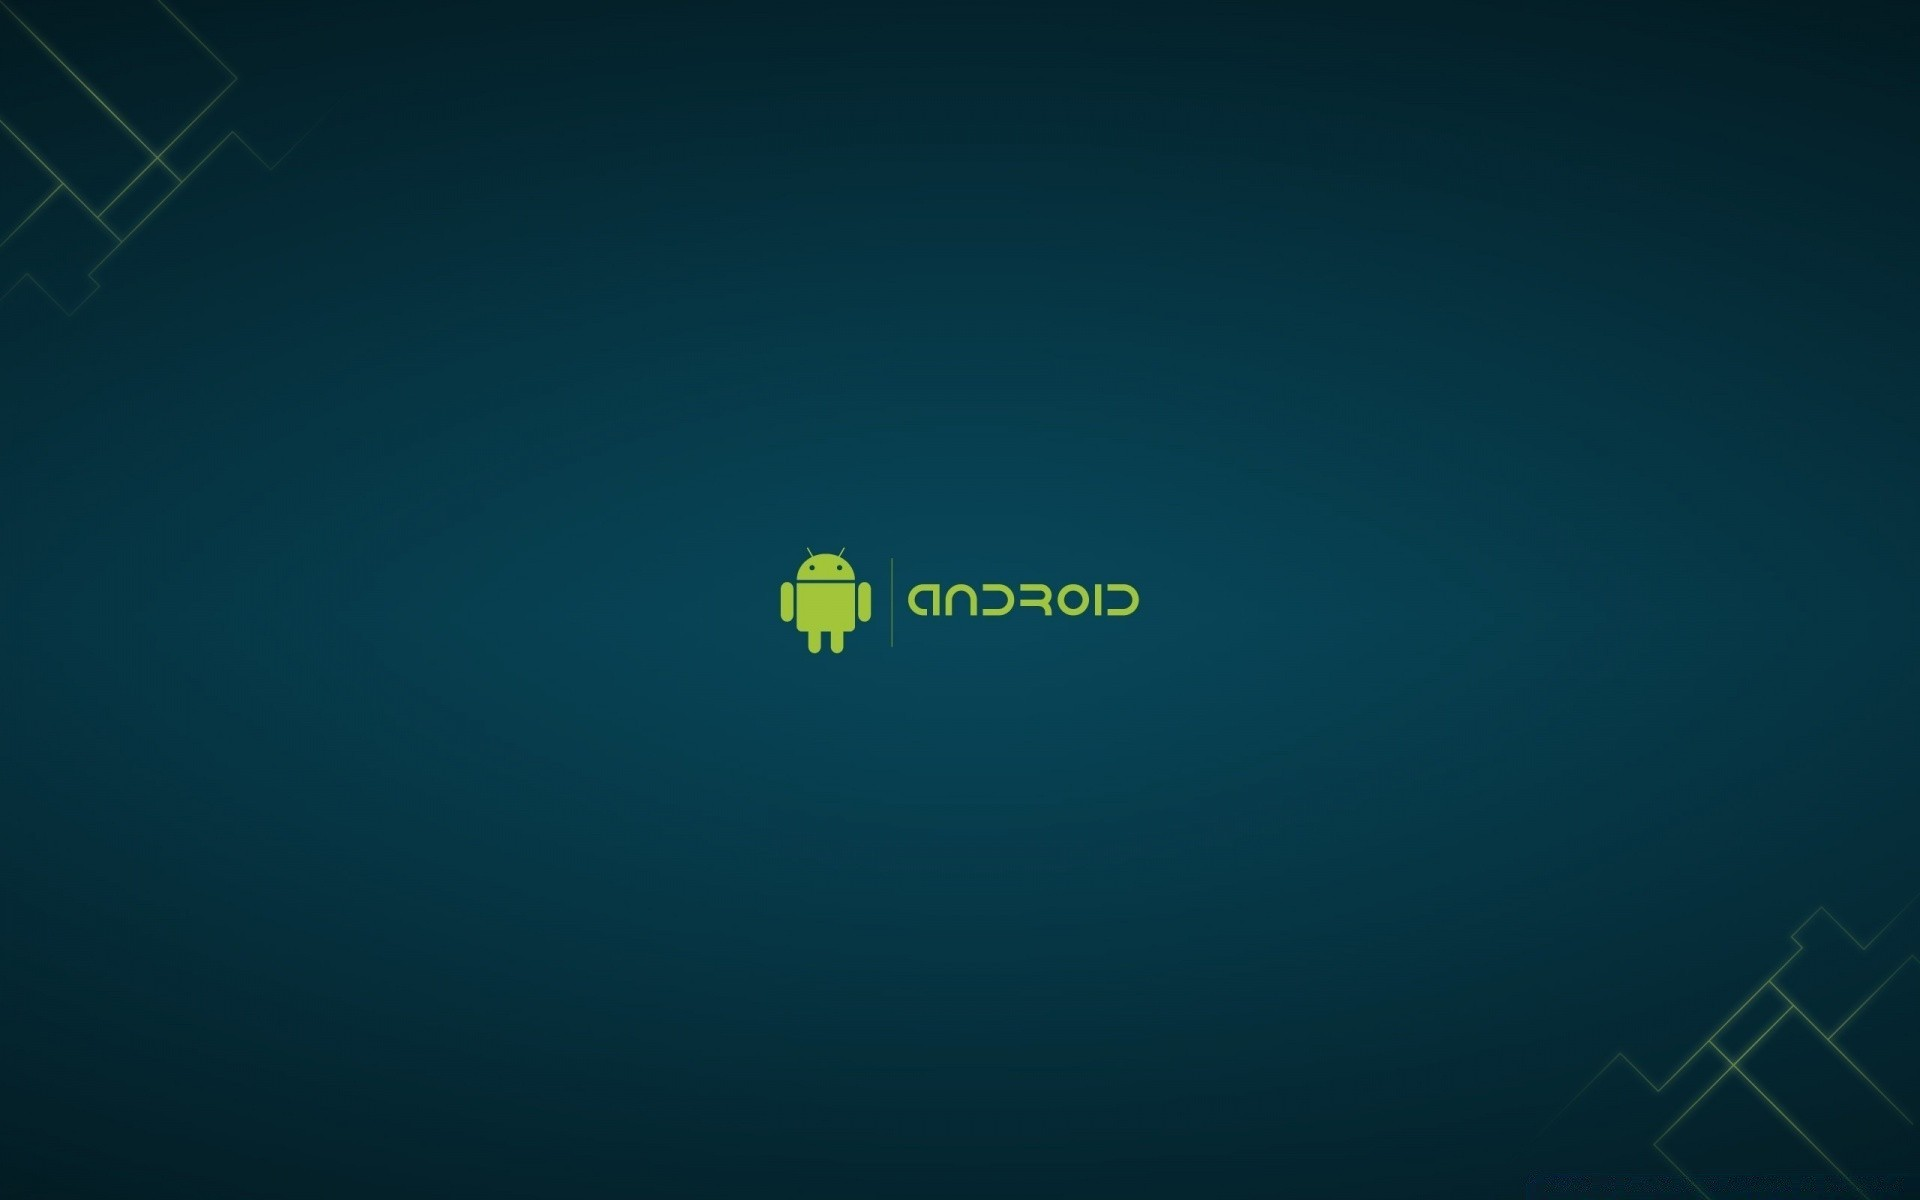 Android-фон